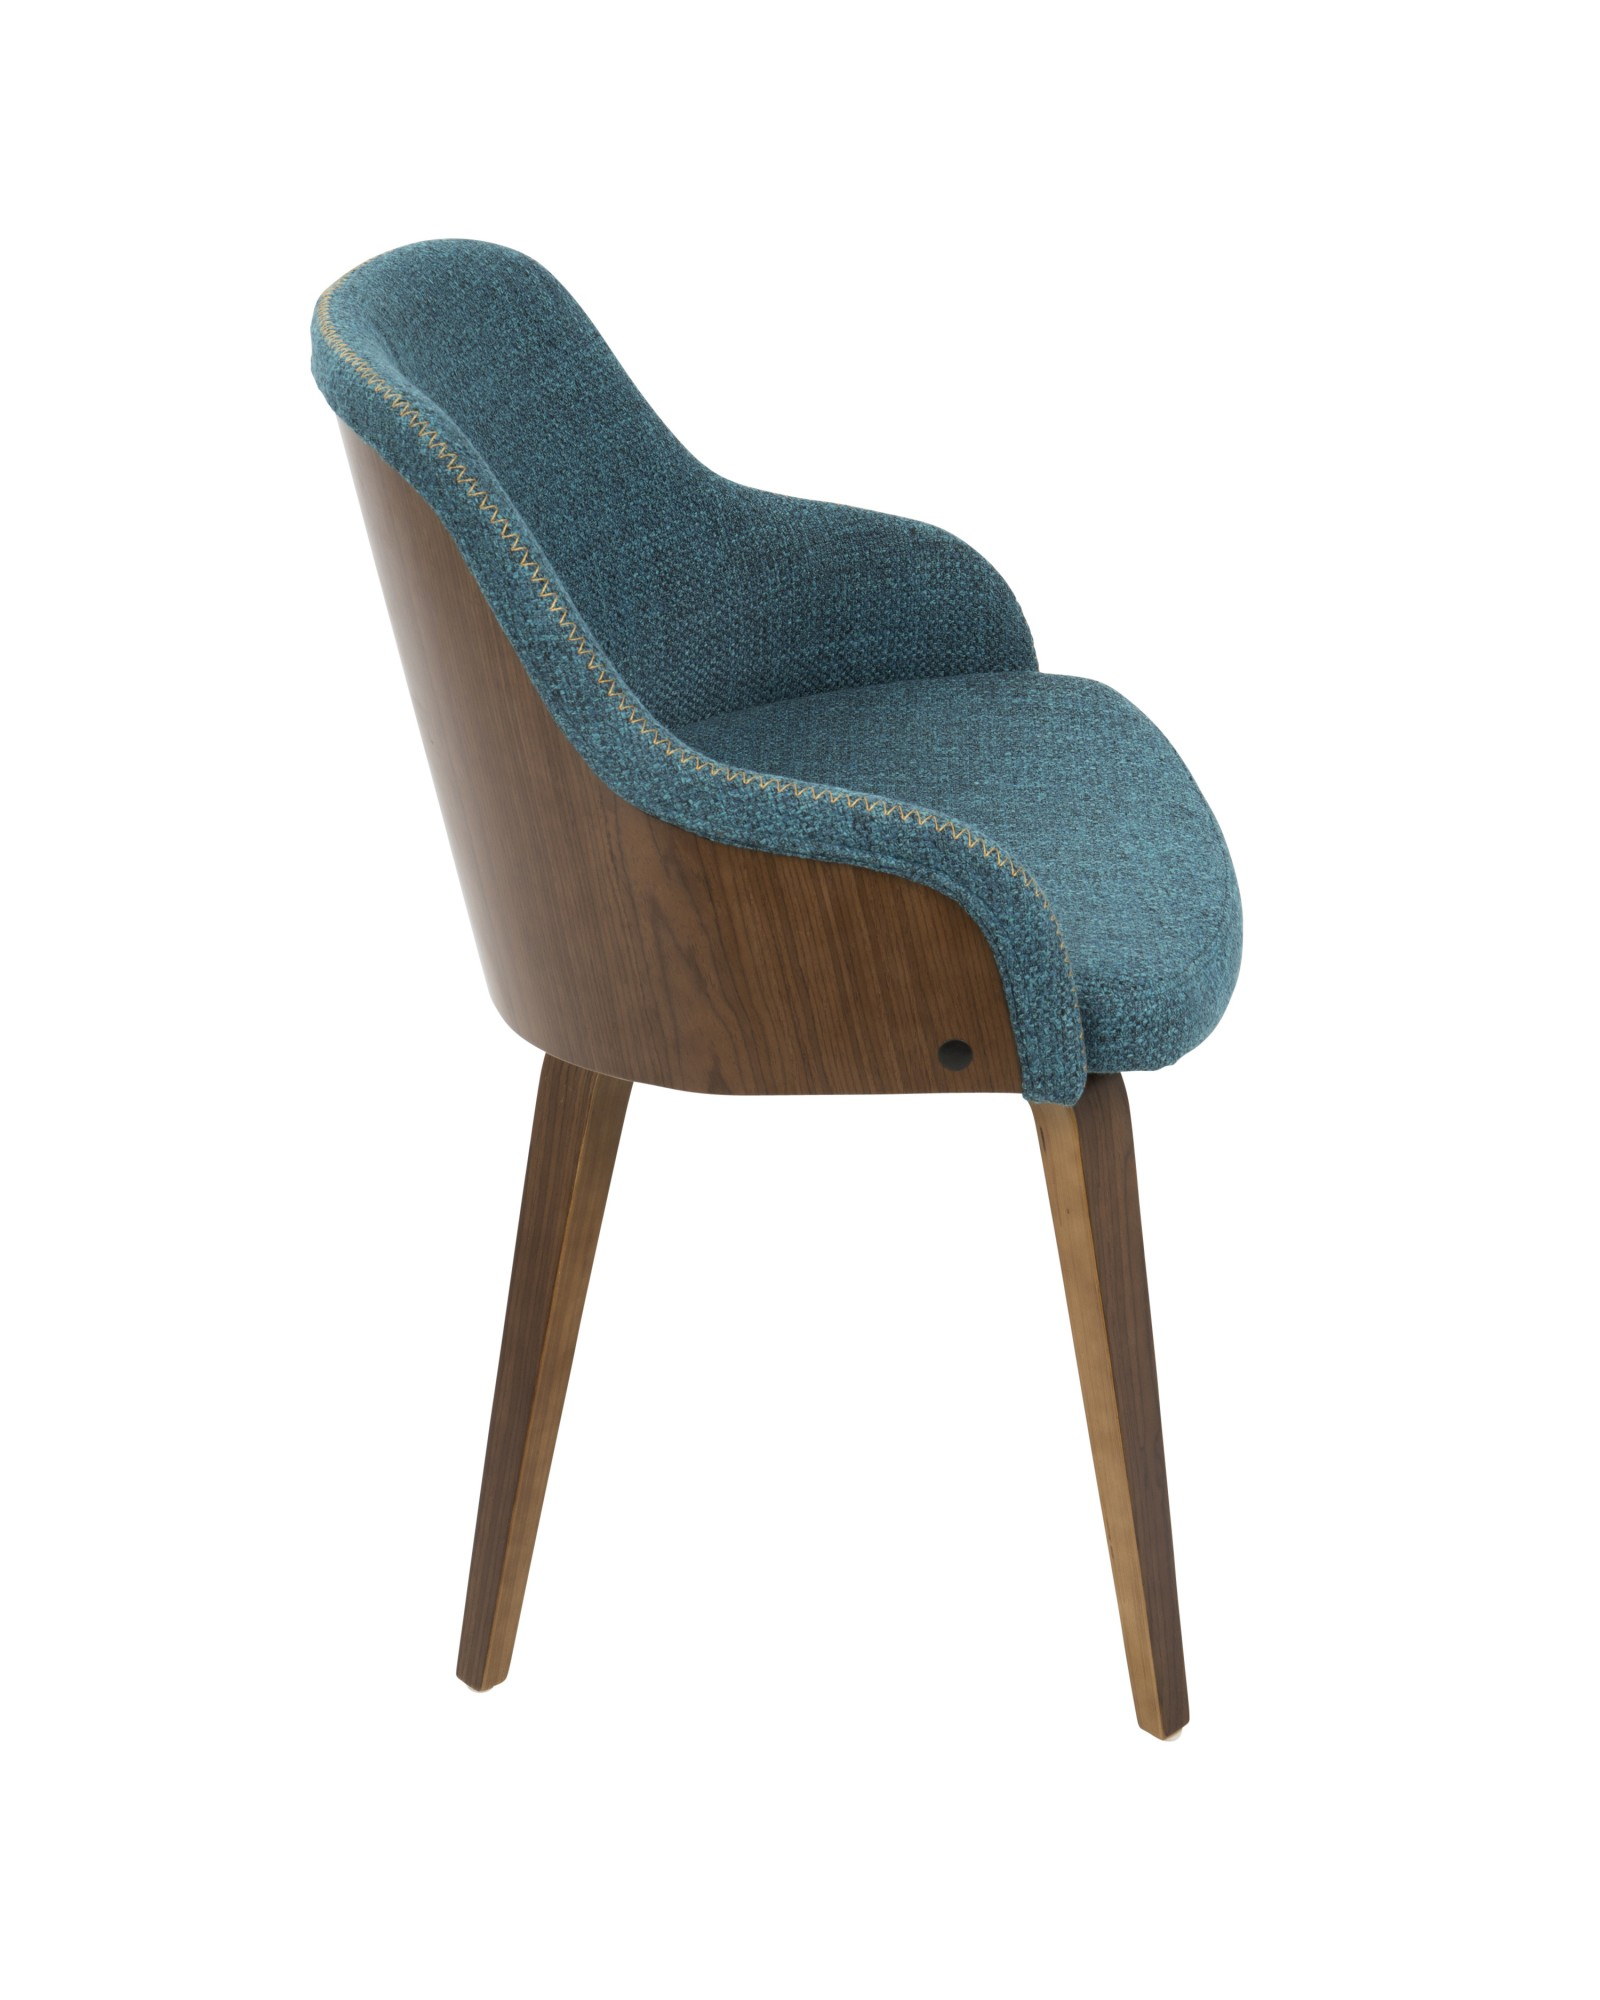 Bacci Mid-Century Modern Dining/ Accent Chair in Walnut Wood and Teal Fabric